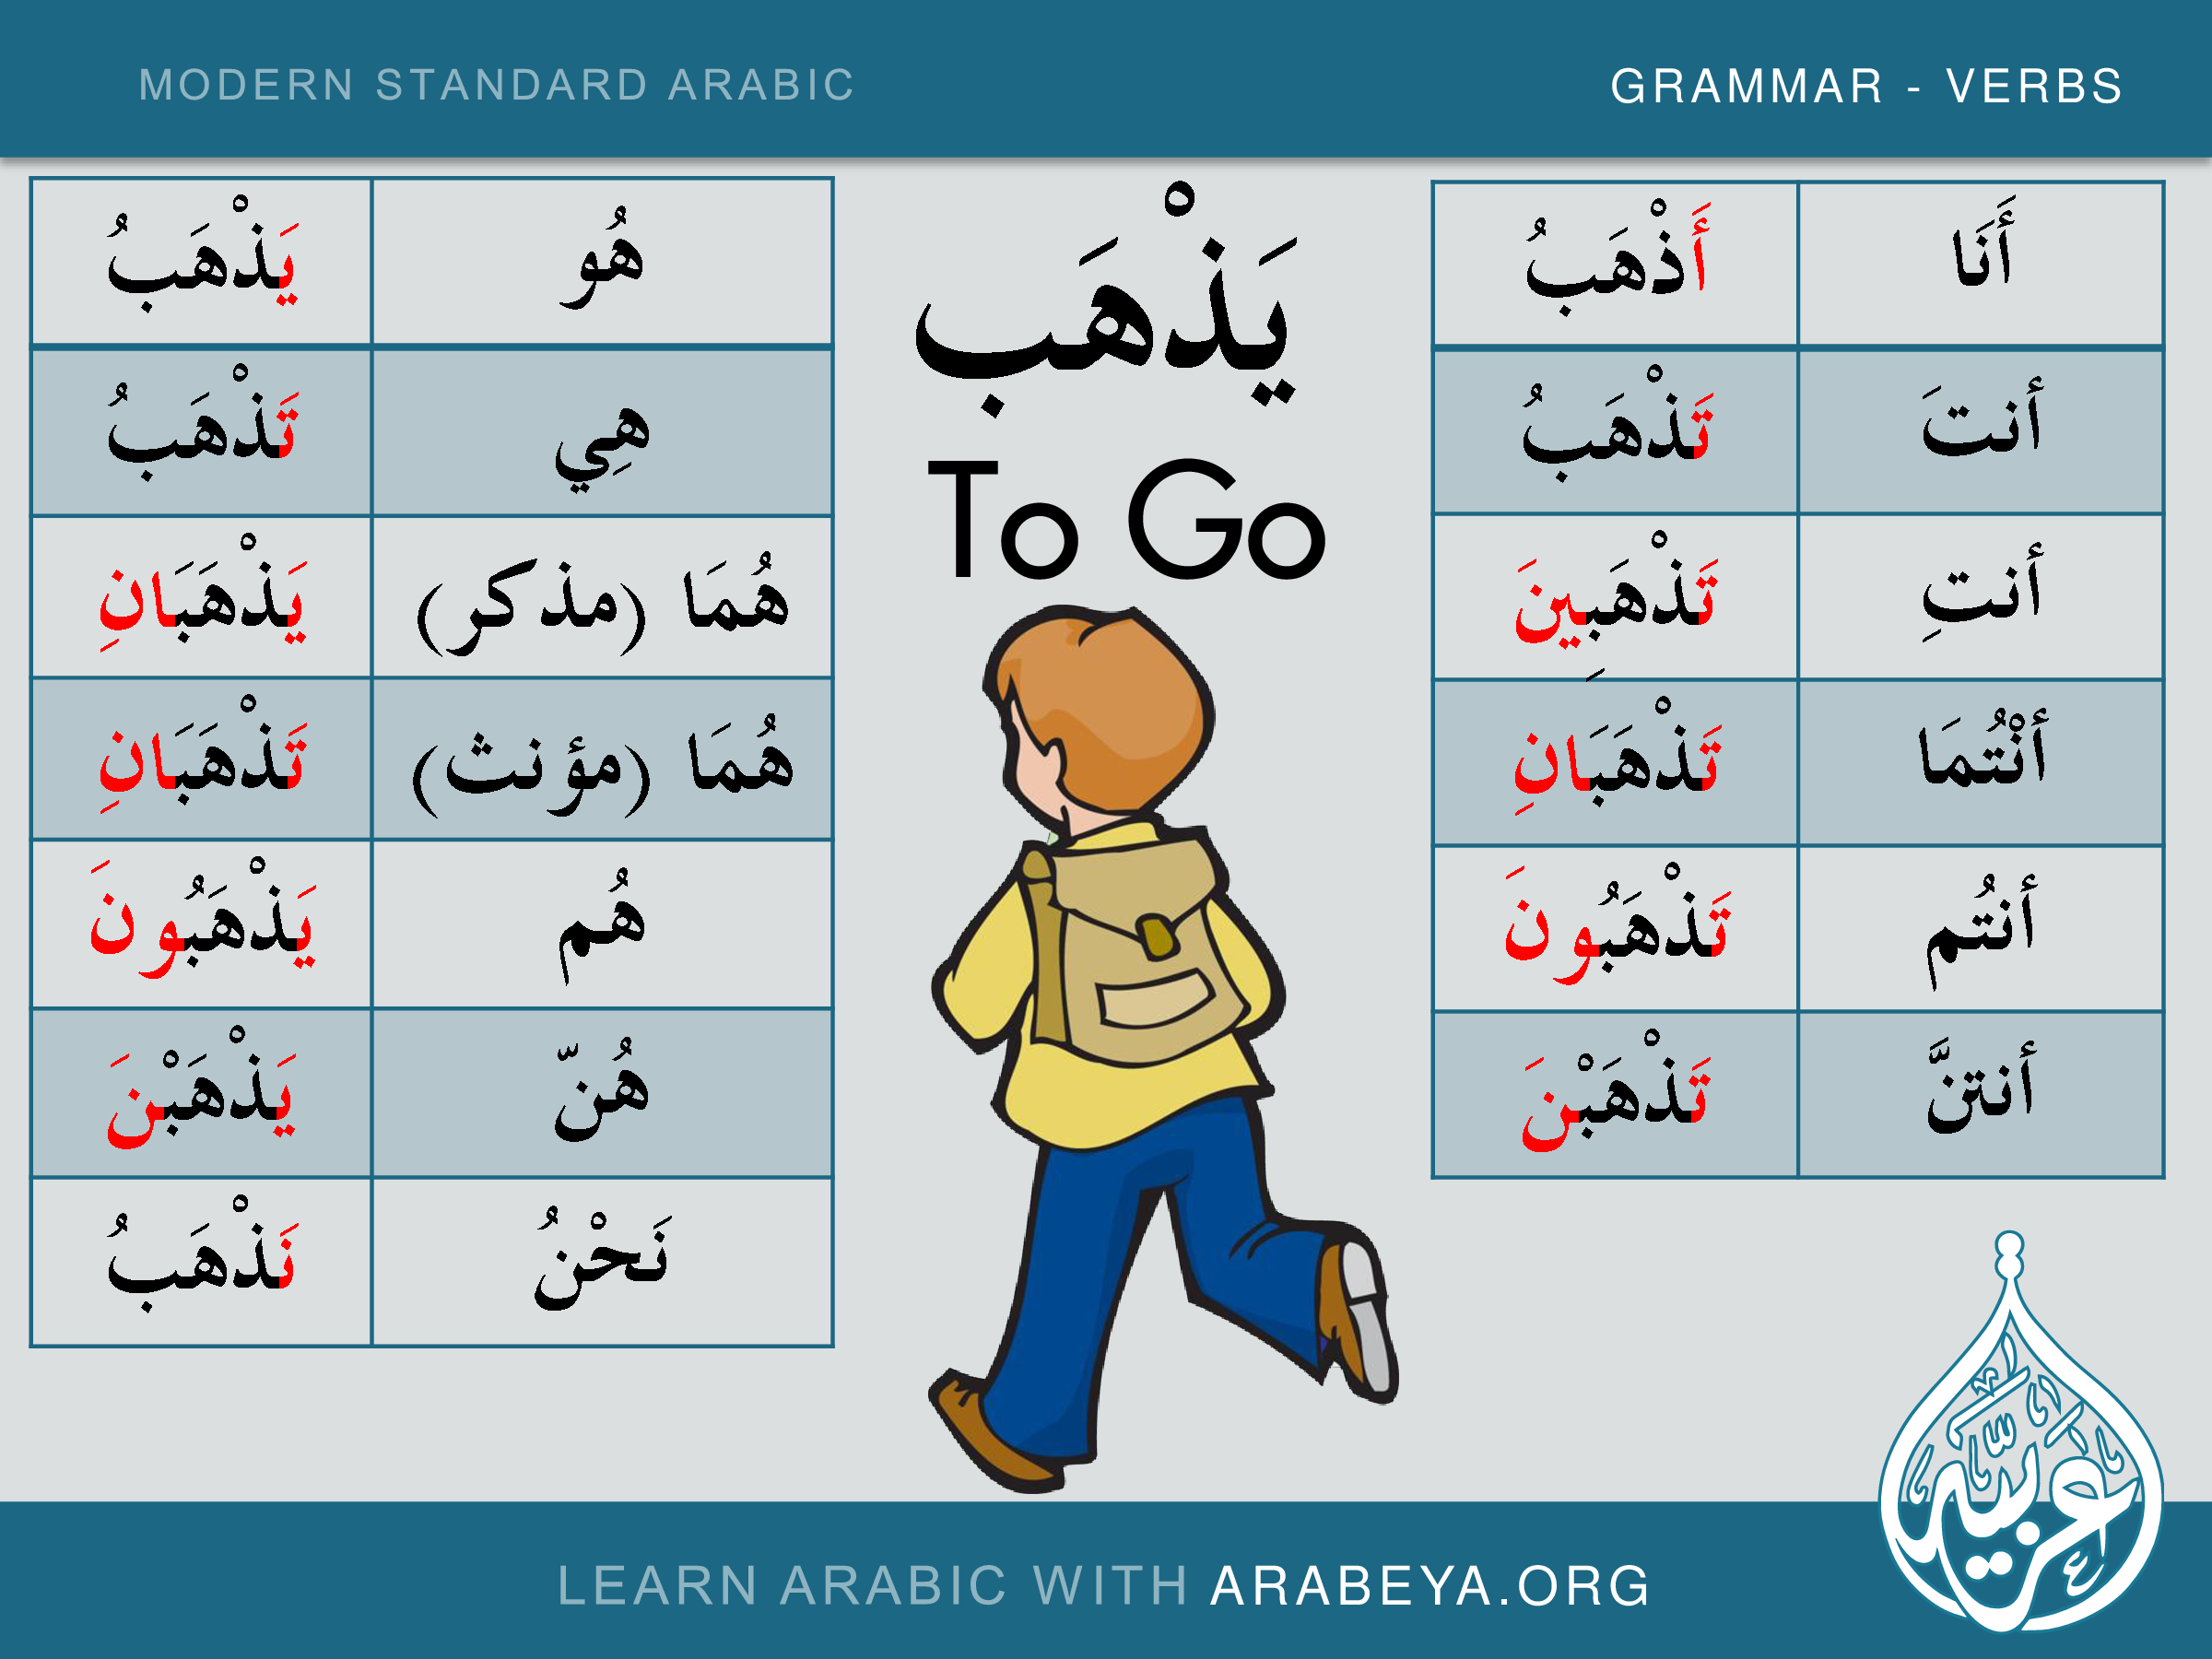 Arabic Words List - Learn Arabic Online - searchtruth.com